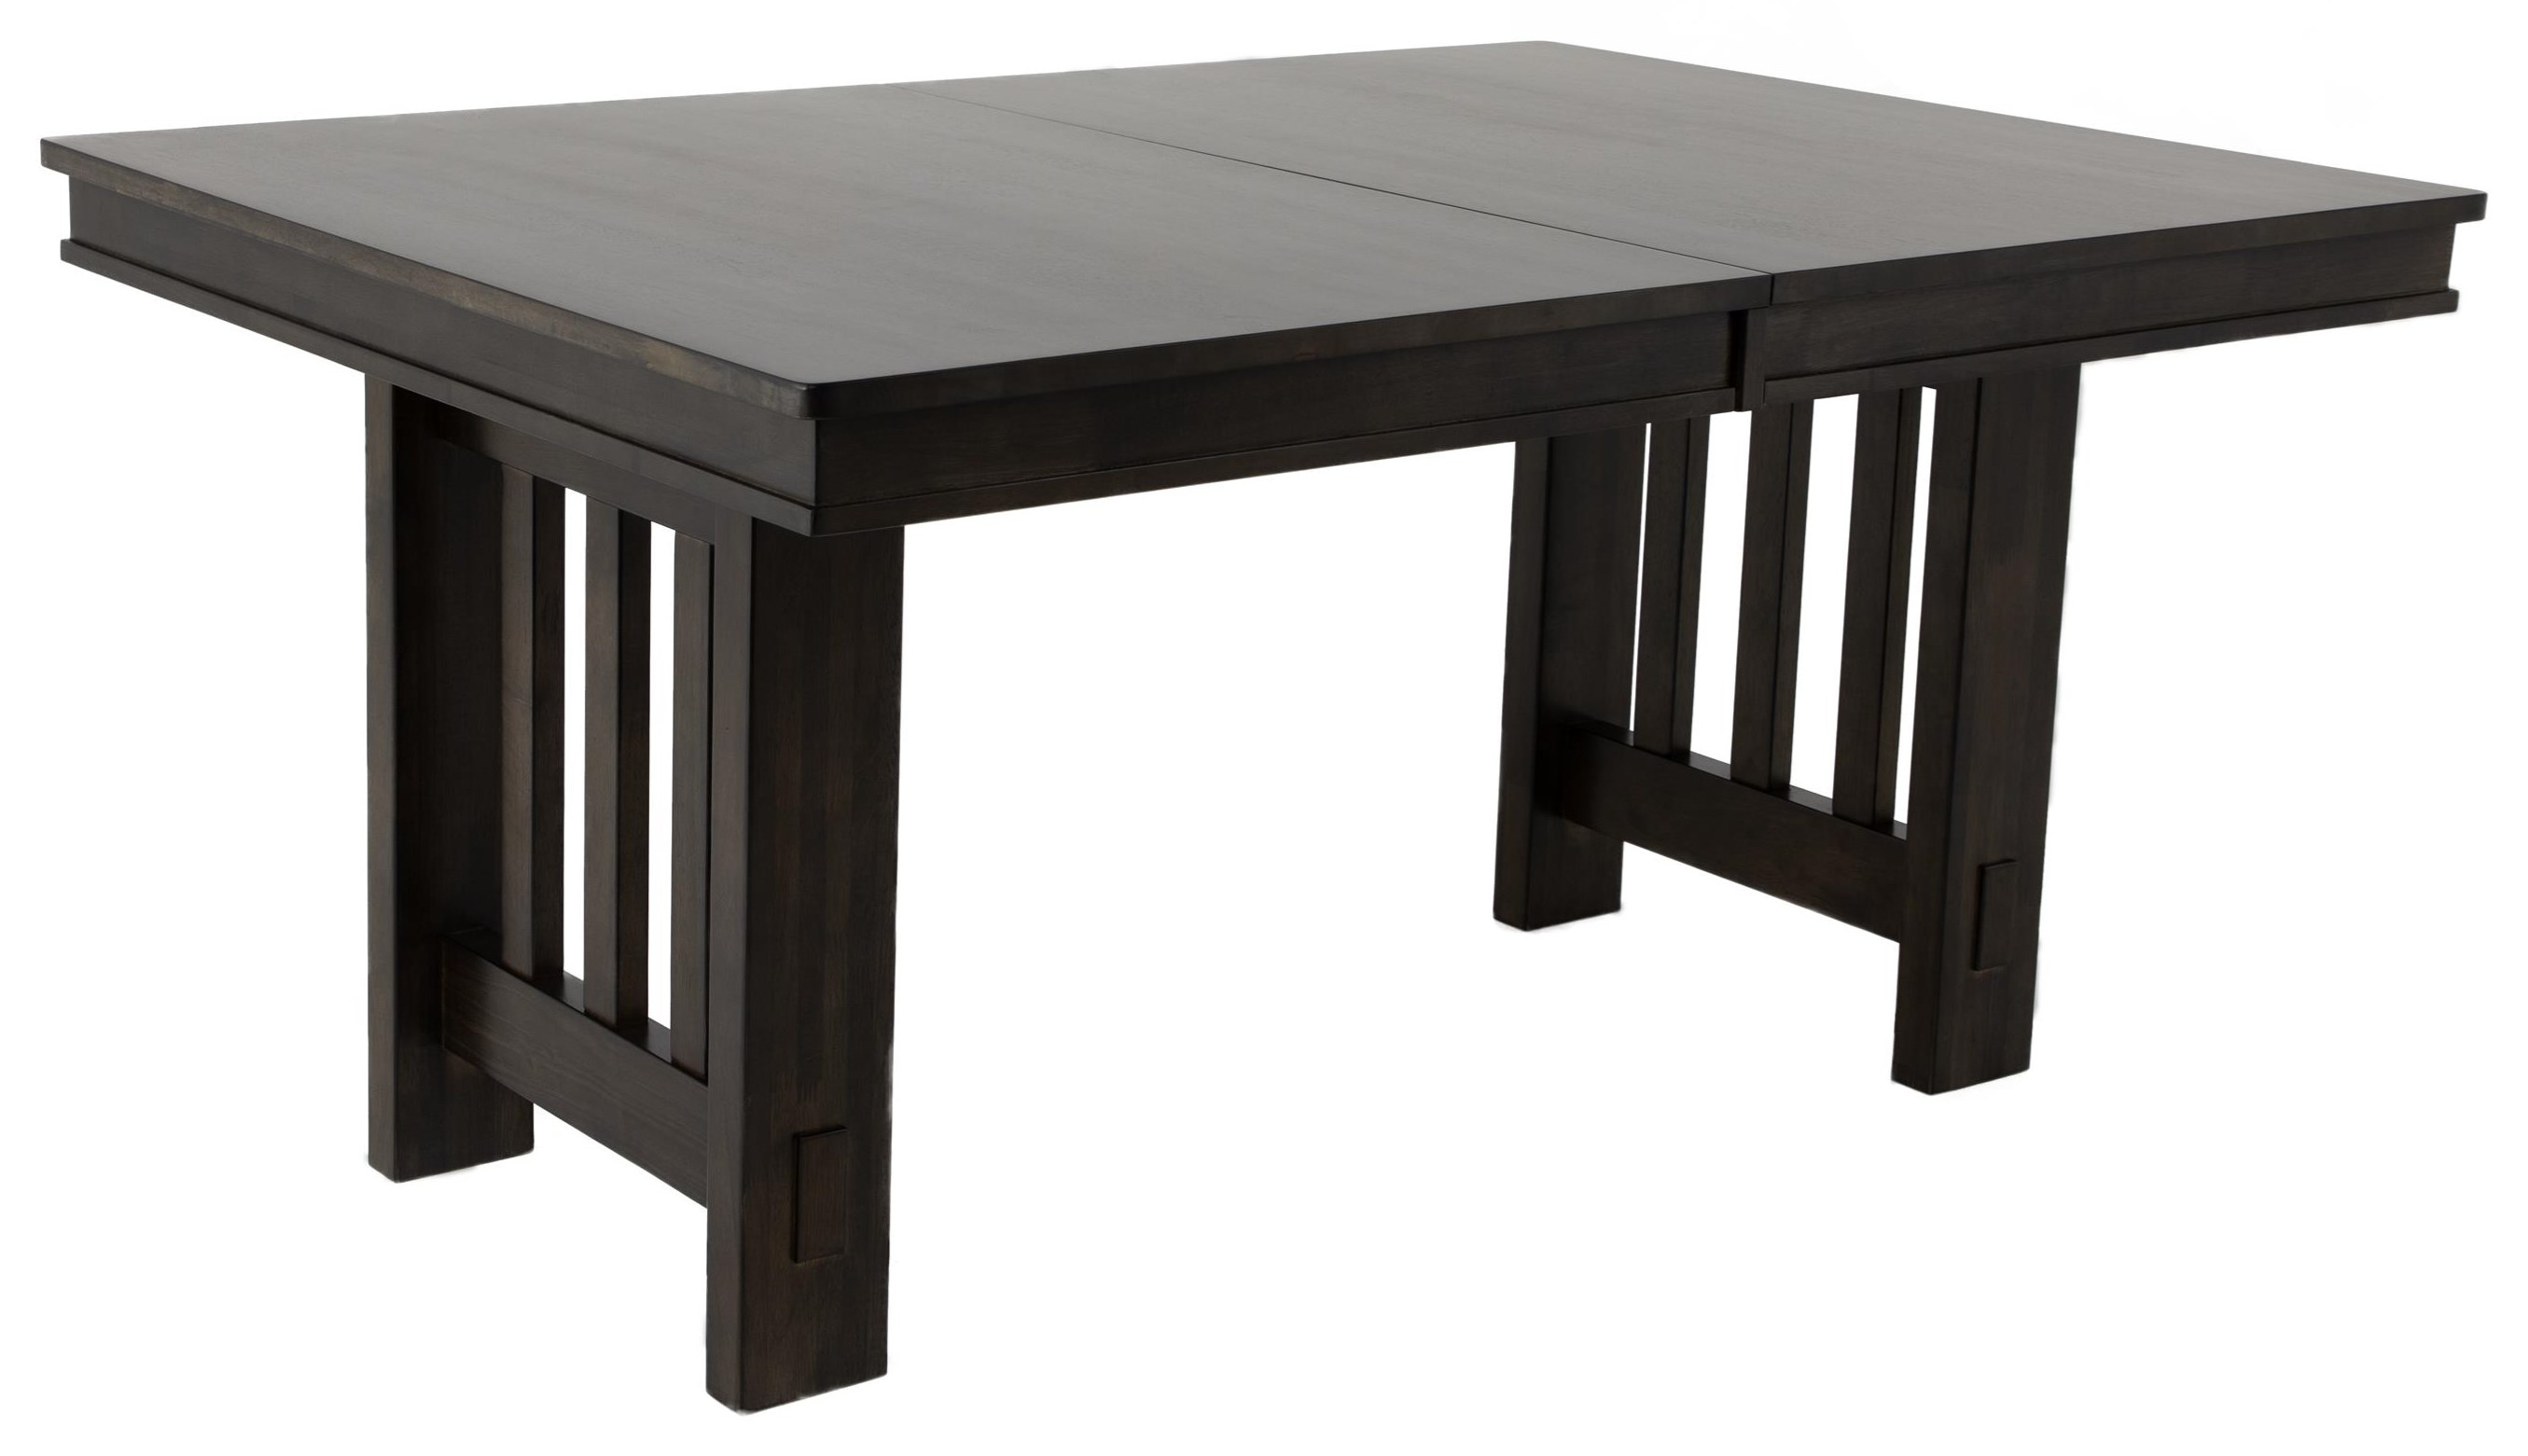 Elston TRANSITIONAL TABLE by A-A at Walker's Furniture